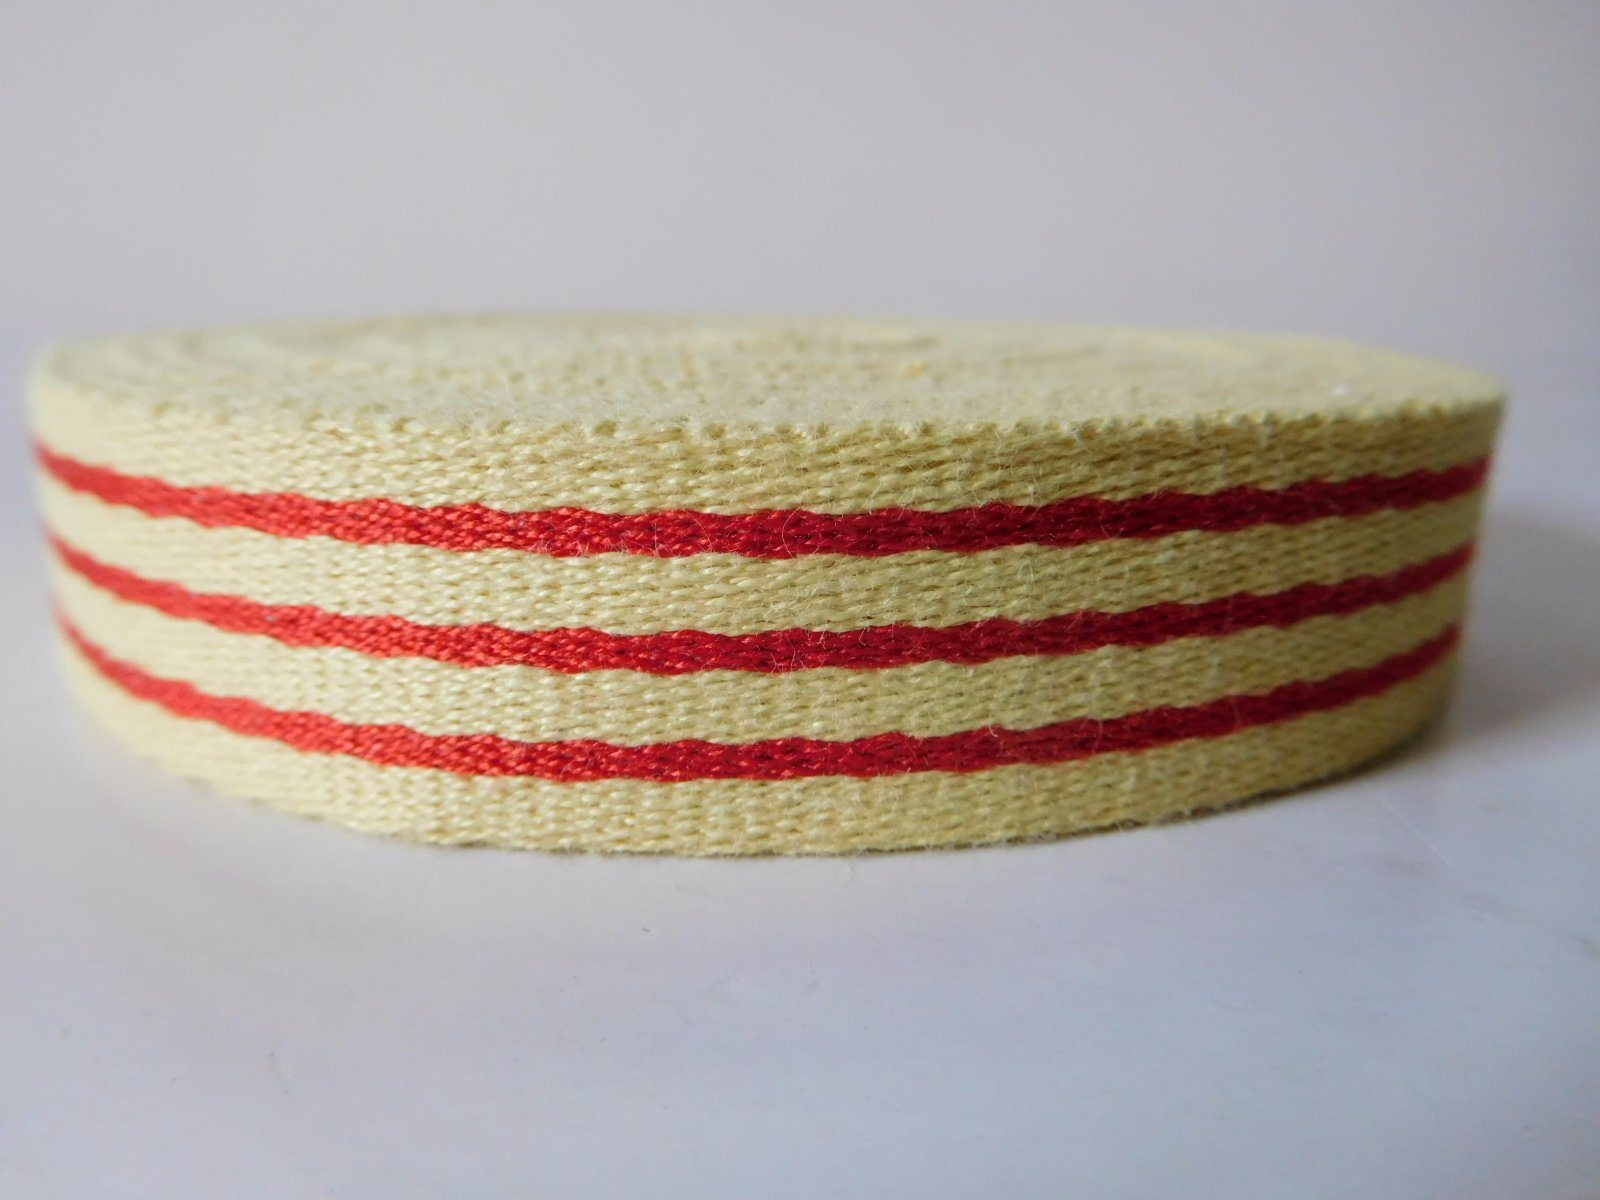 20mm Aramid Fiber Webbing for Fire Safety Garment and Accessories